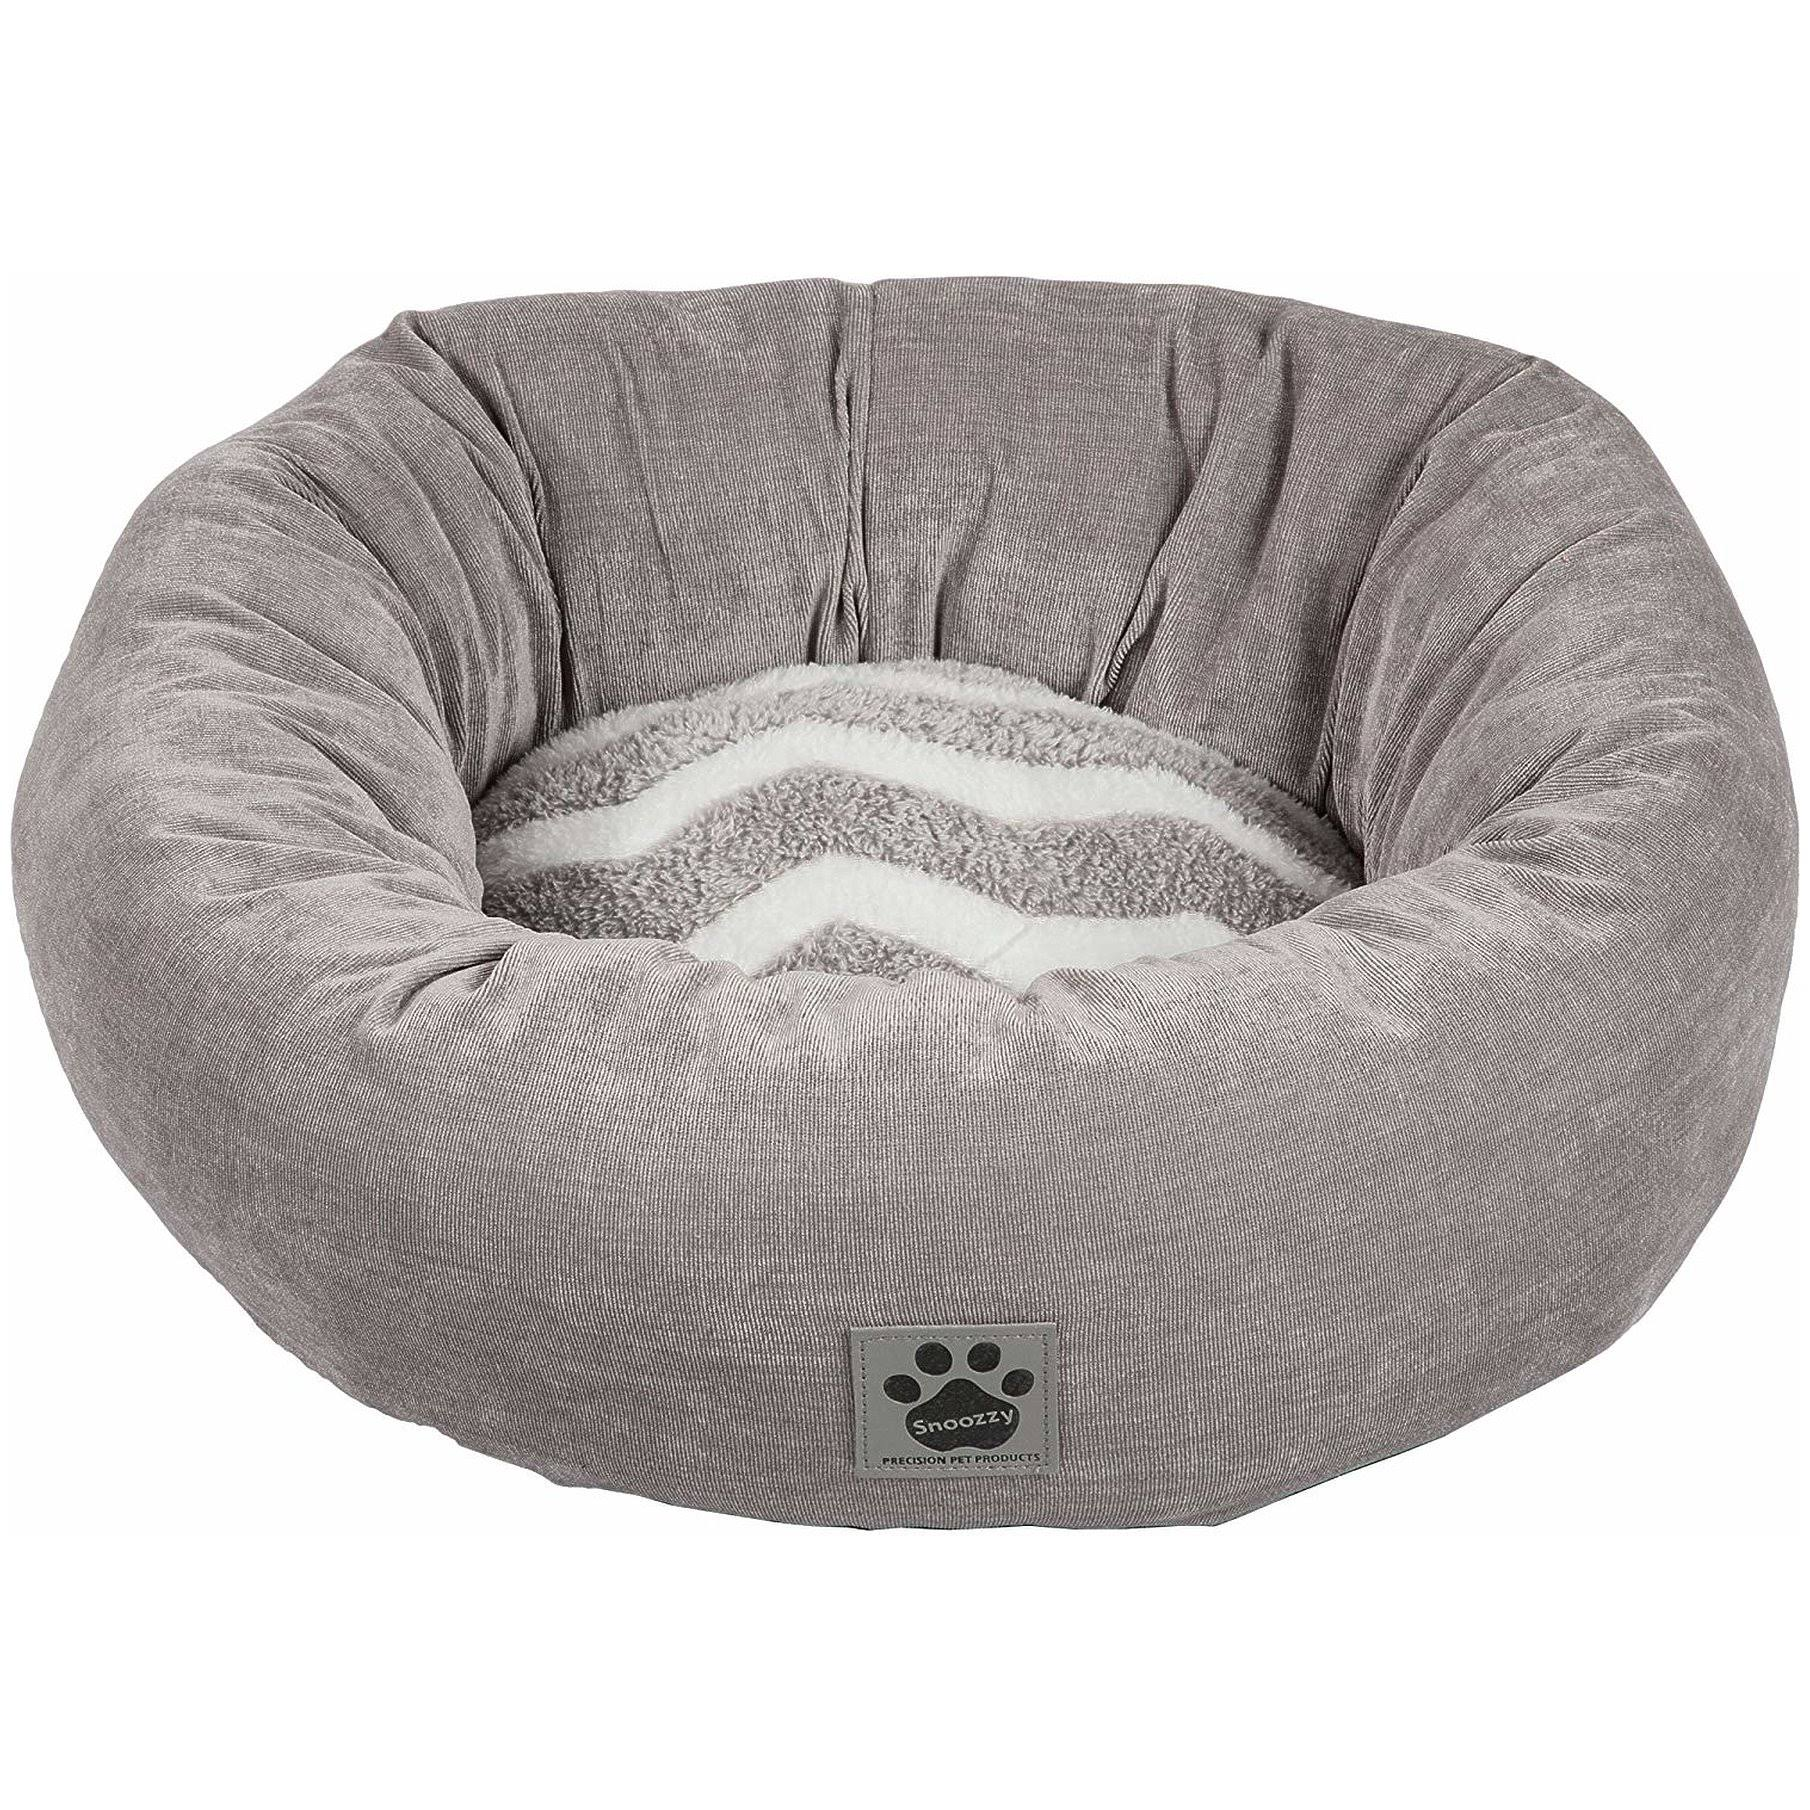 Precision Pet SnooZZy Donut Bed - White/Gray Cord, 17""